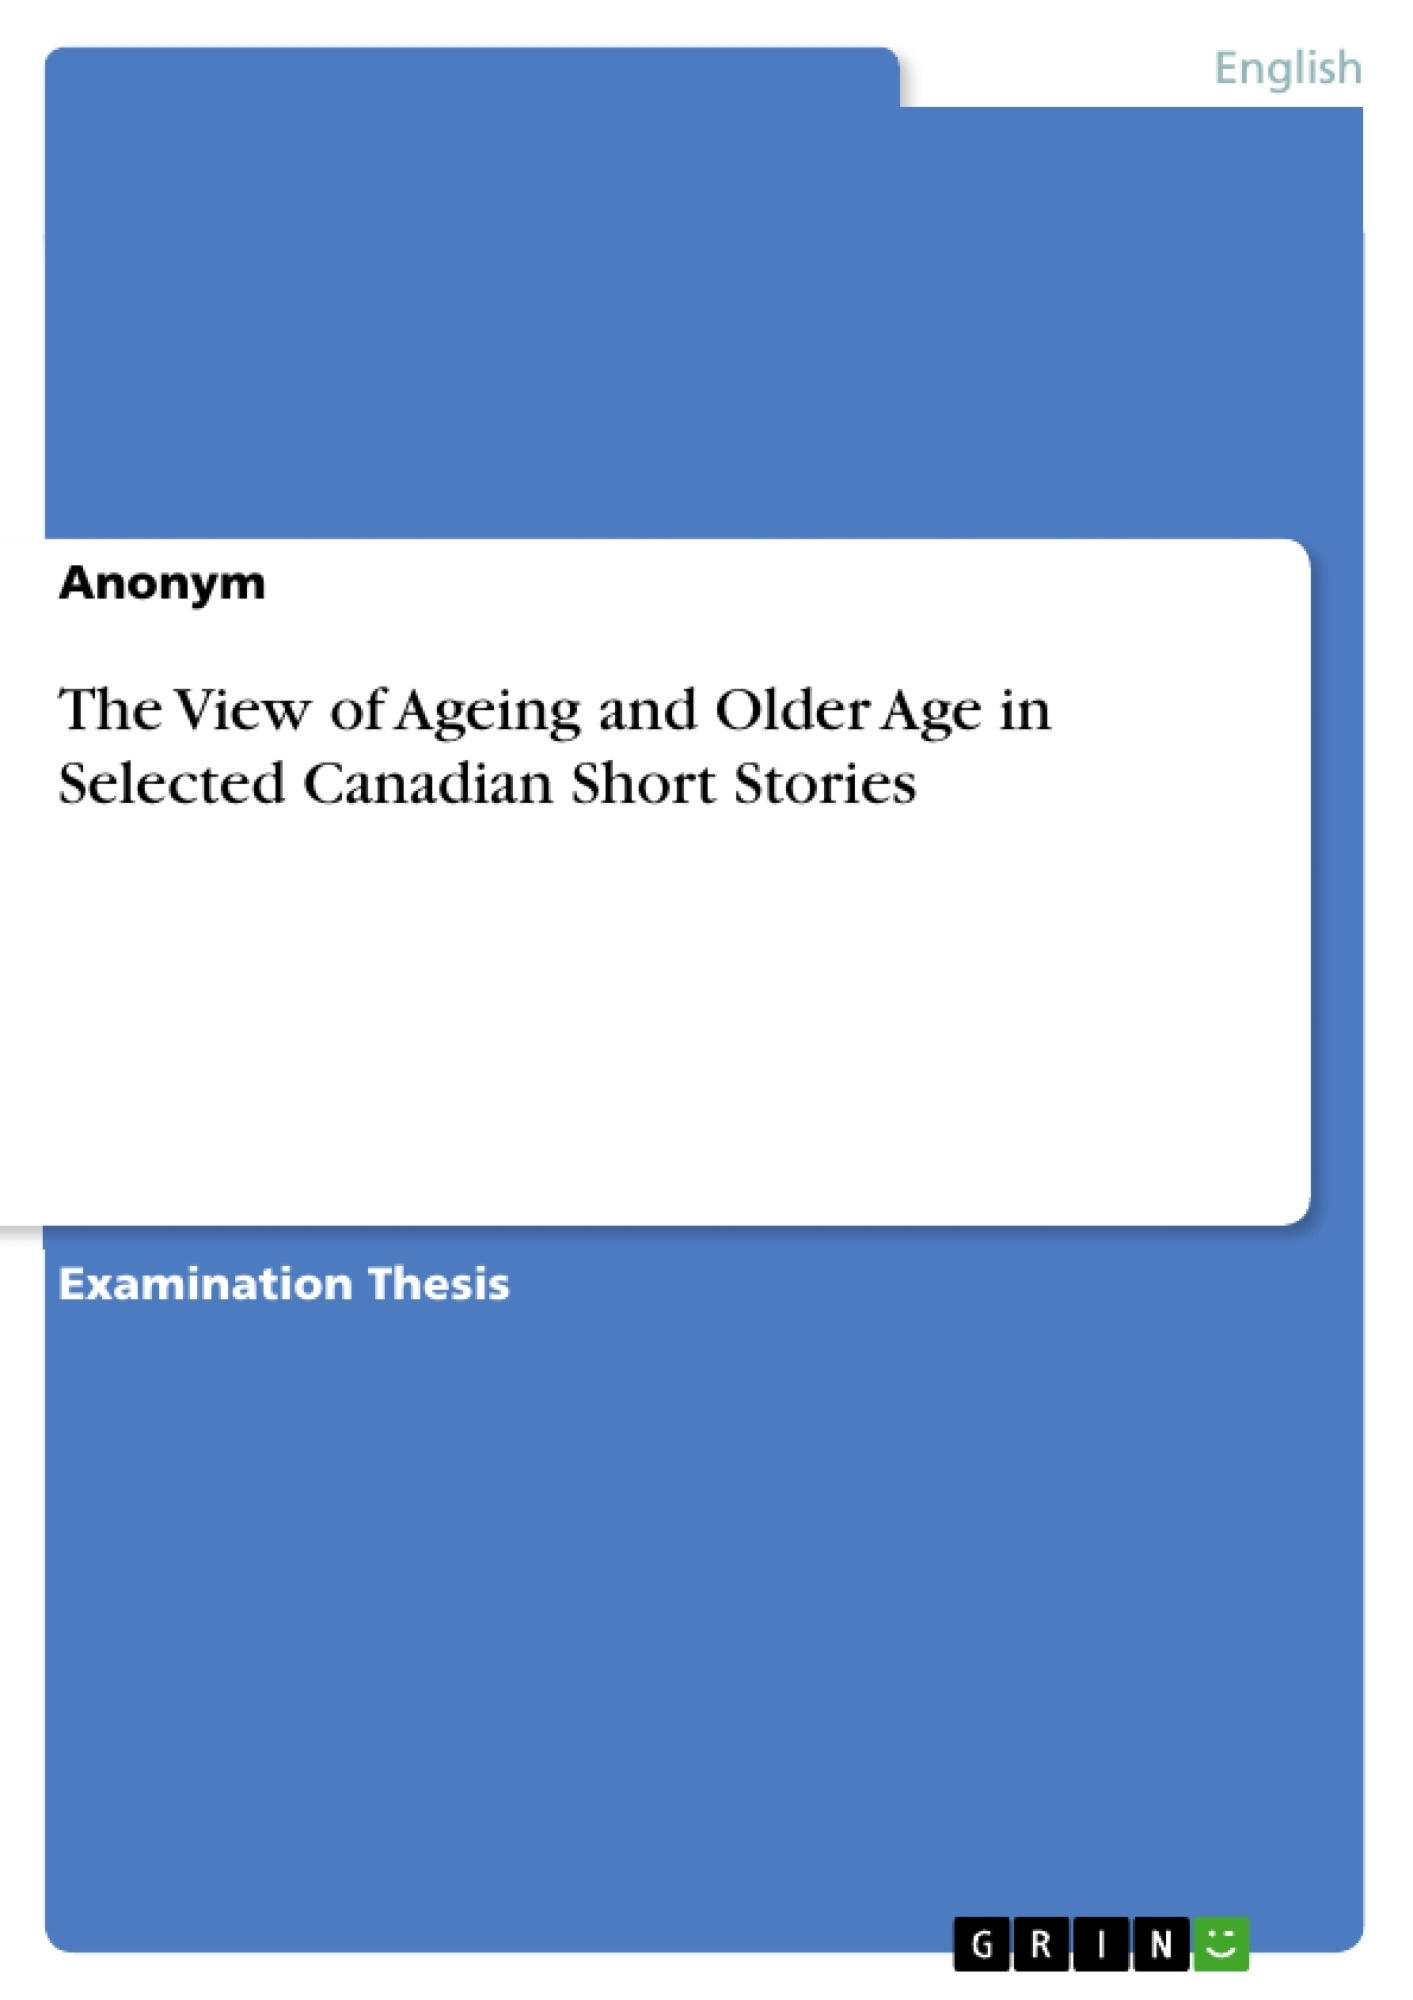 Title: The View of Ageing and Older Age in Selected Canadian Short Stories